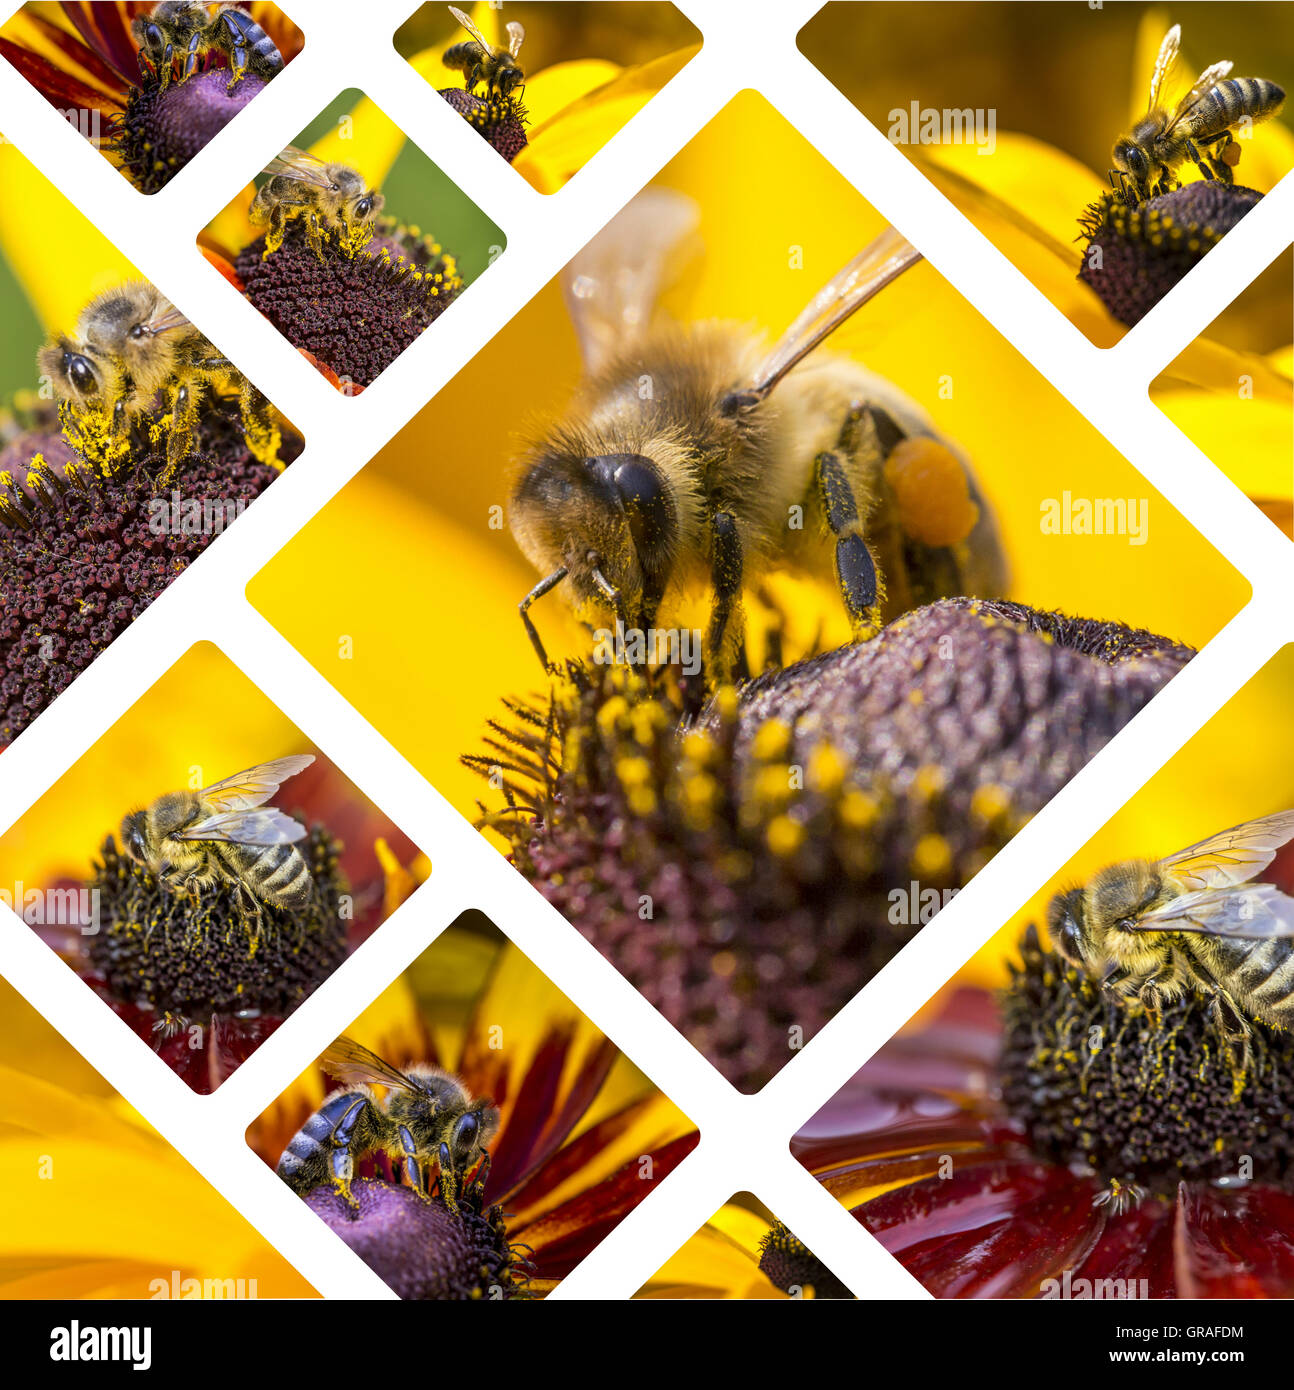 Collage of Western Honey Bee images - travel background (my photos) - Stock Image